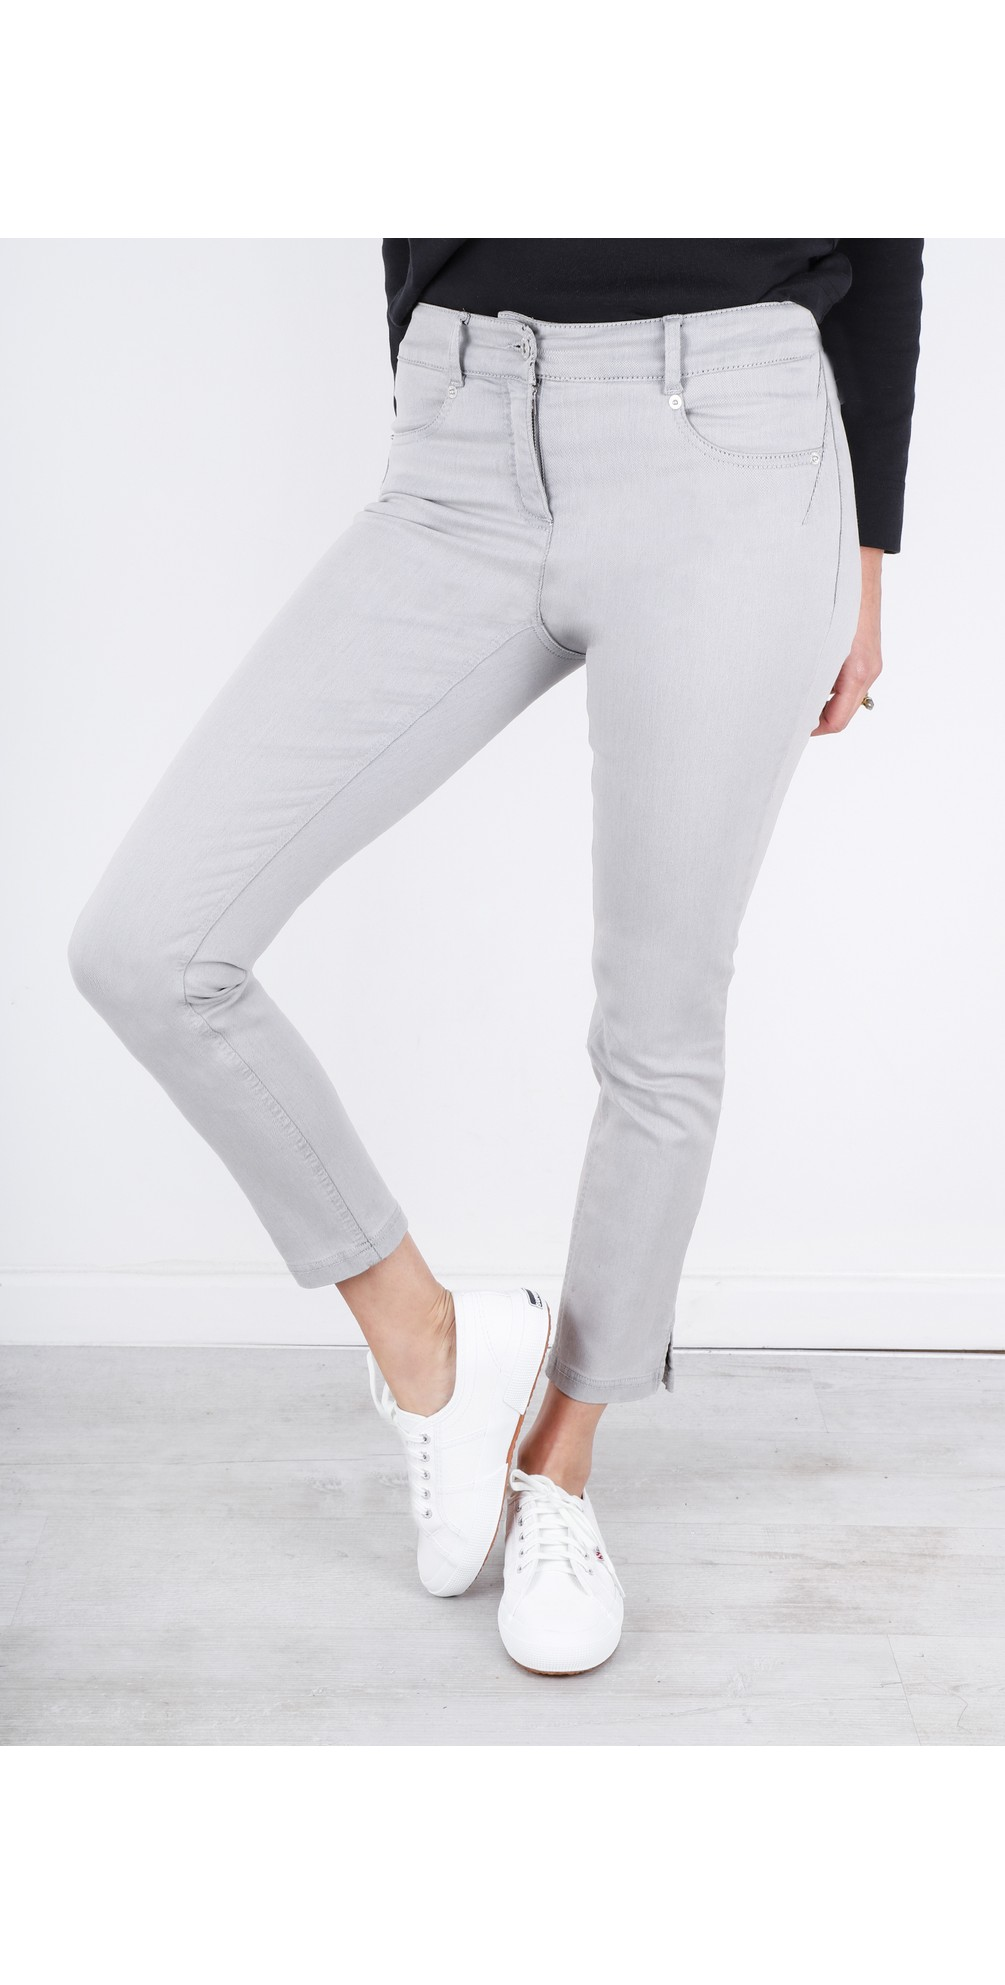 Star 09 Light Grey Power Stretch Cropped Skinny jean main image